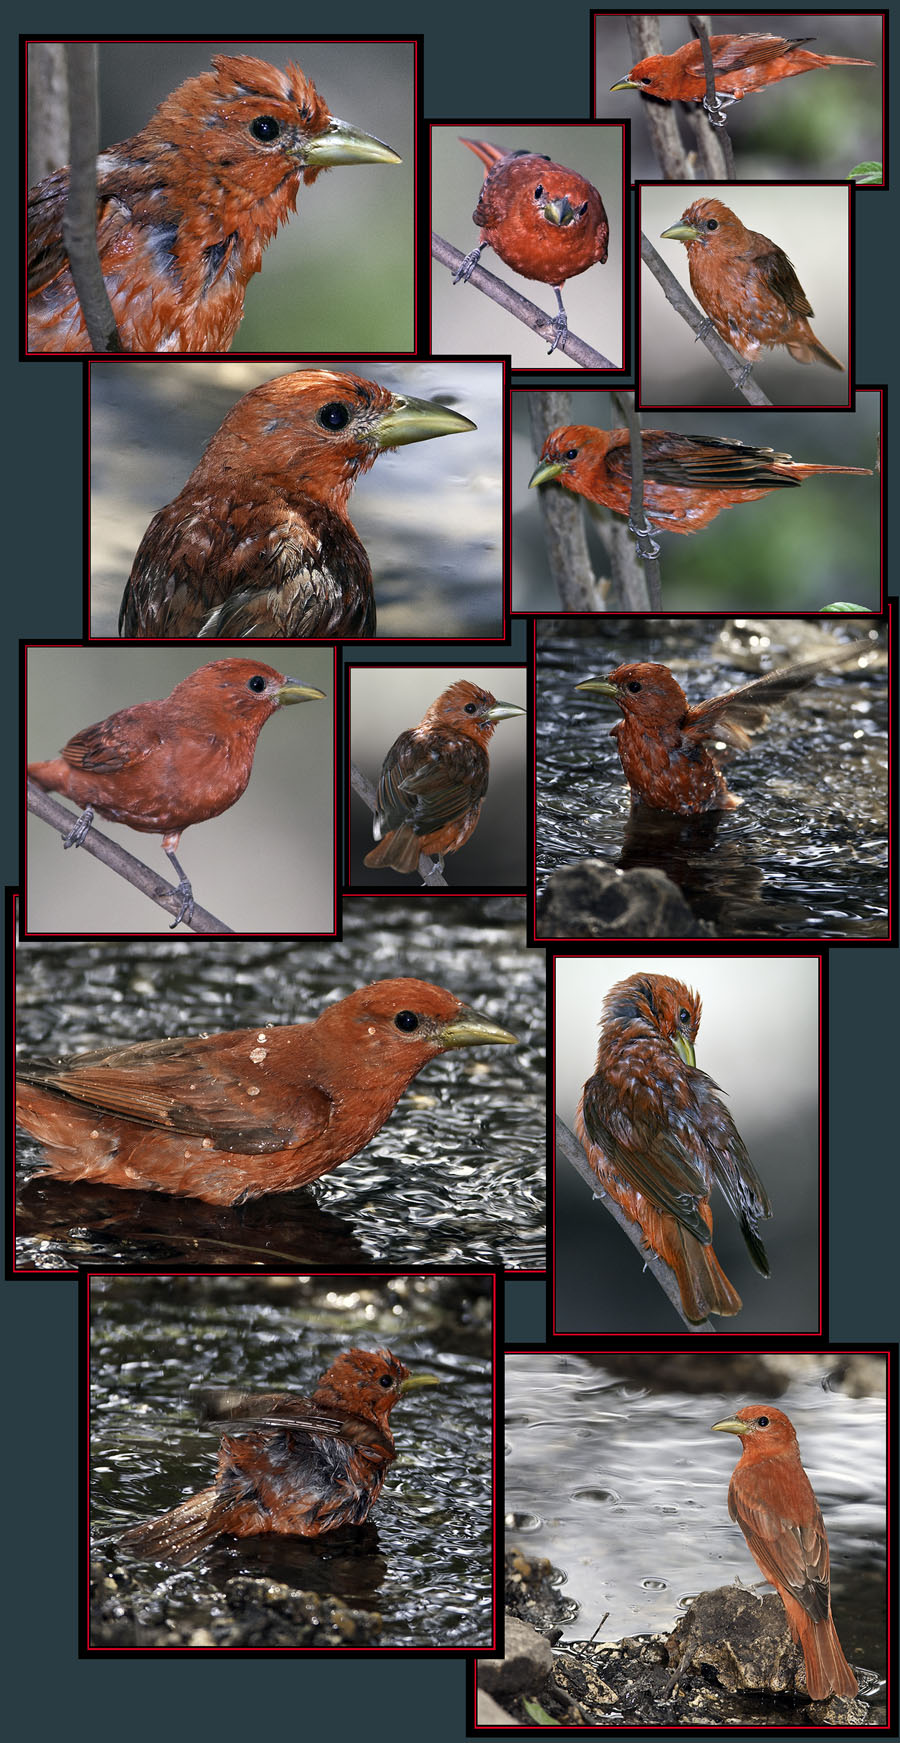 At the Water Hole - Summer Tanager Files - Friedrich Wilderness Park - San Antonio, Texas